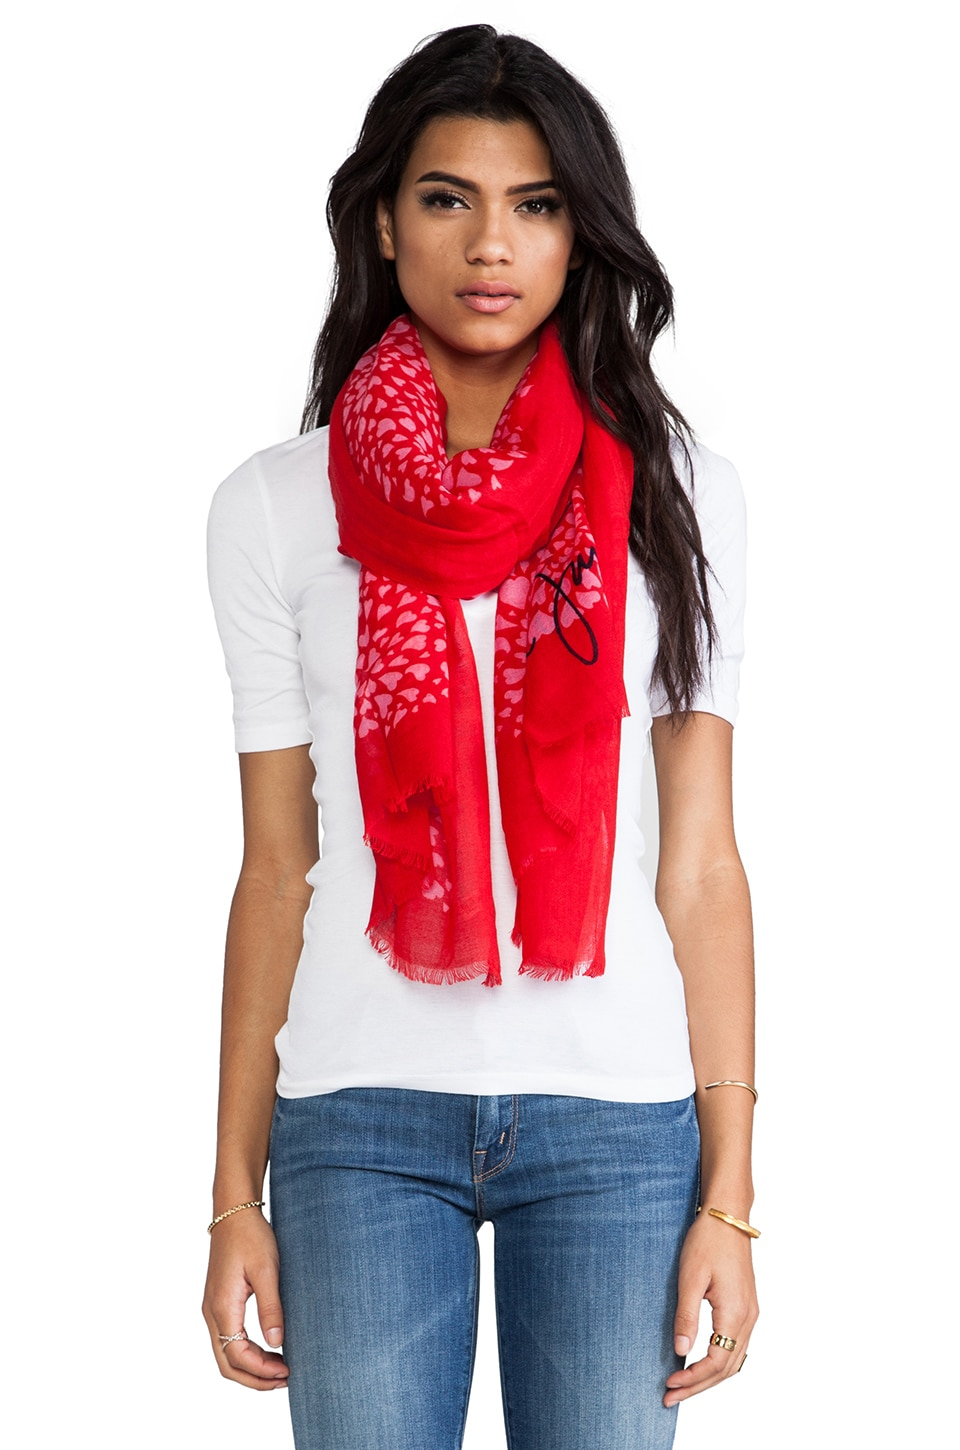 Juicy Couture Heart Swirl Scarf in Red Ginger